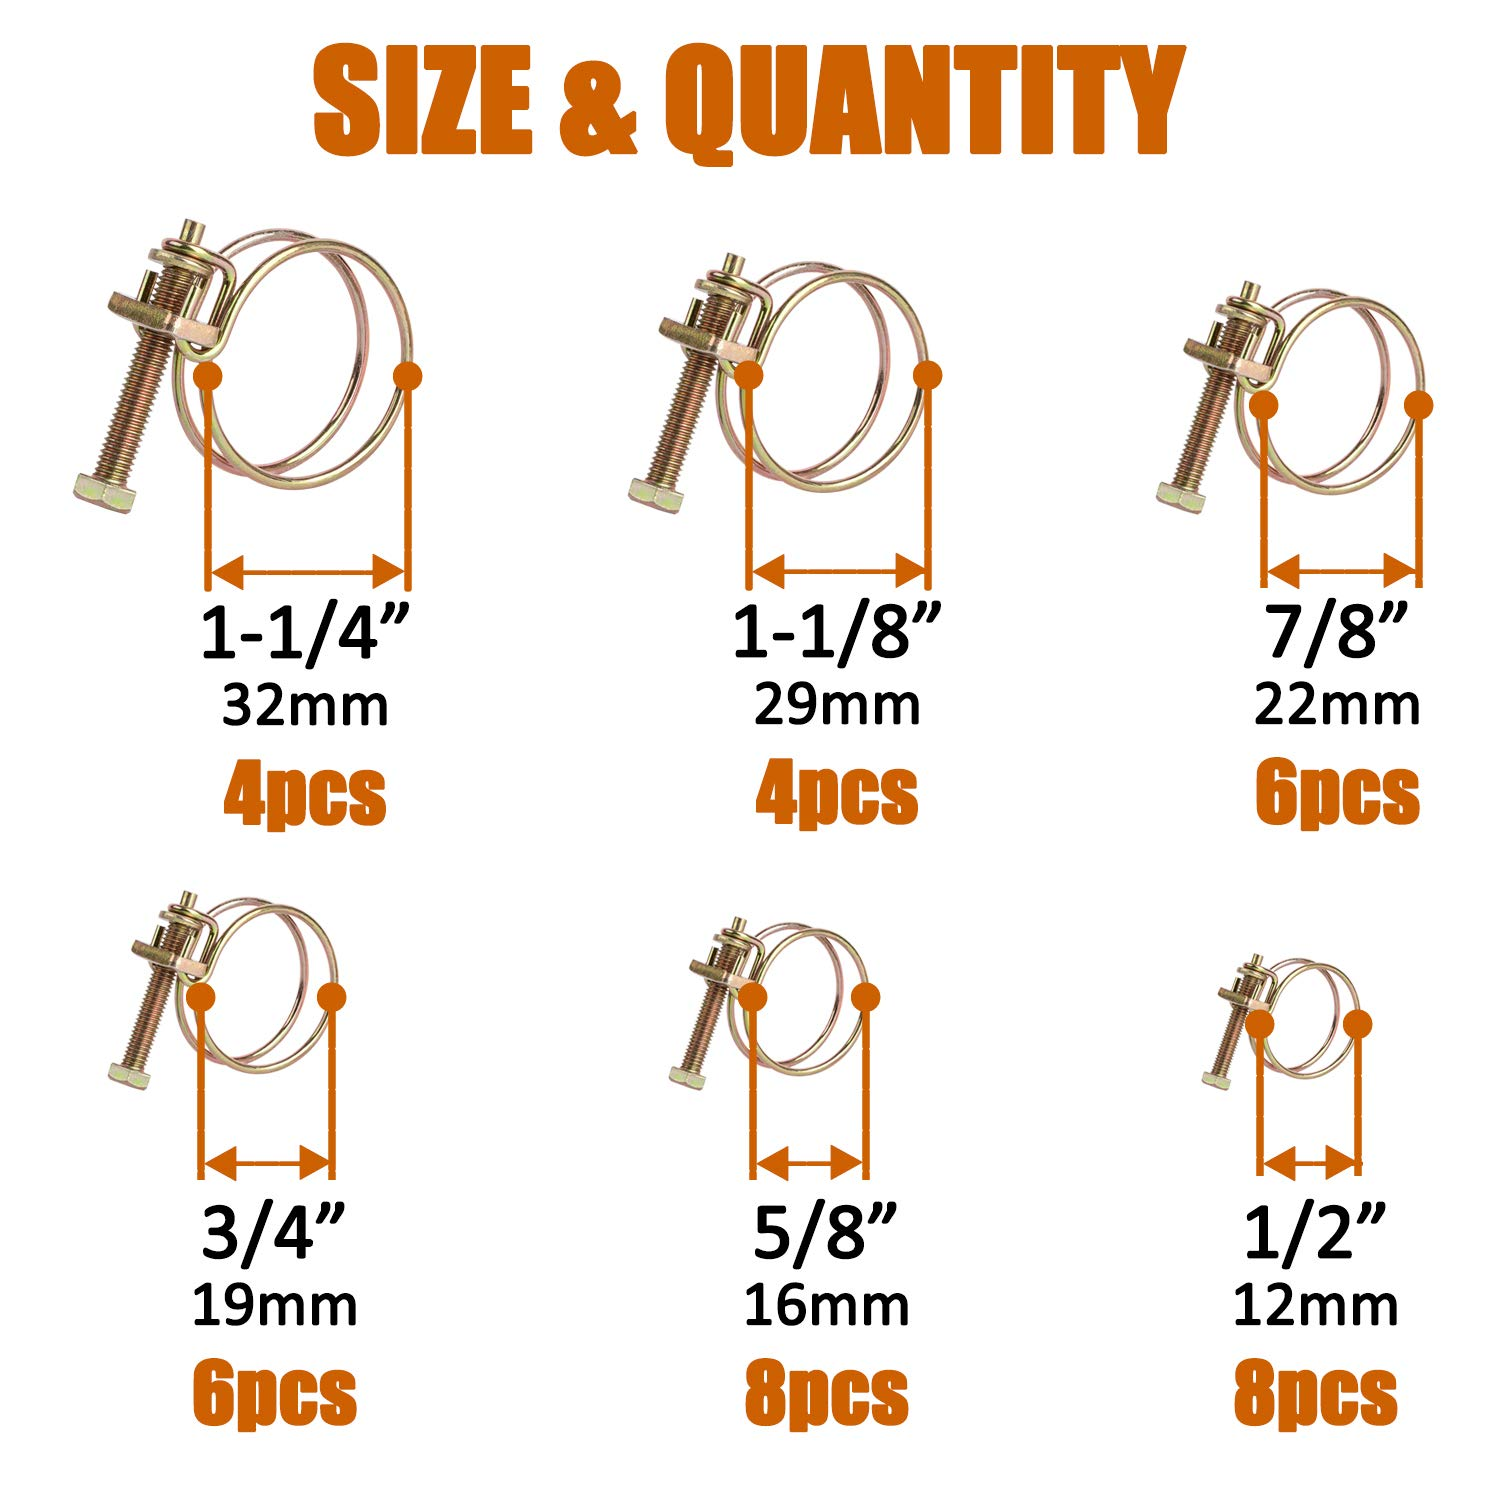 ISPINNER 36pcs 6 Sizes Adjustable Steel Double Wire Hose Clamps Assortment Kit 1//2 5//8 3//4 7//8 1-1//8 1-1//4